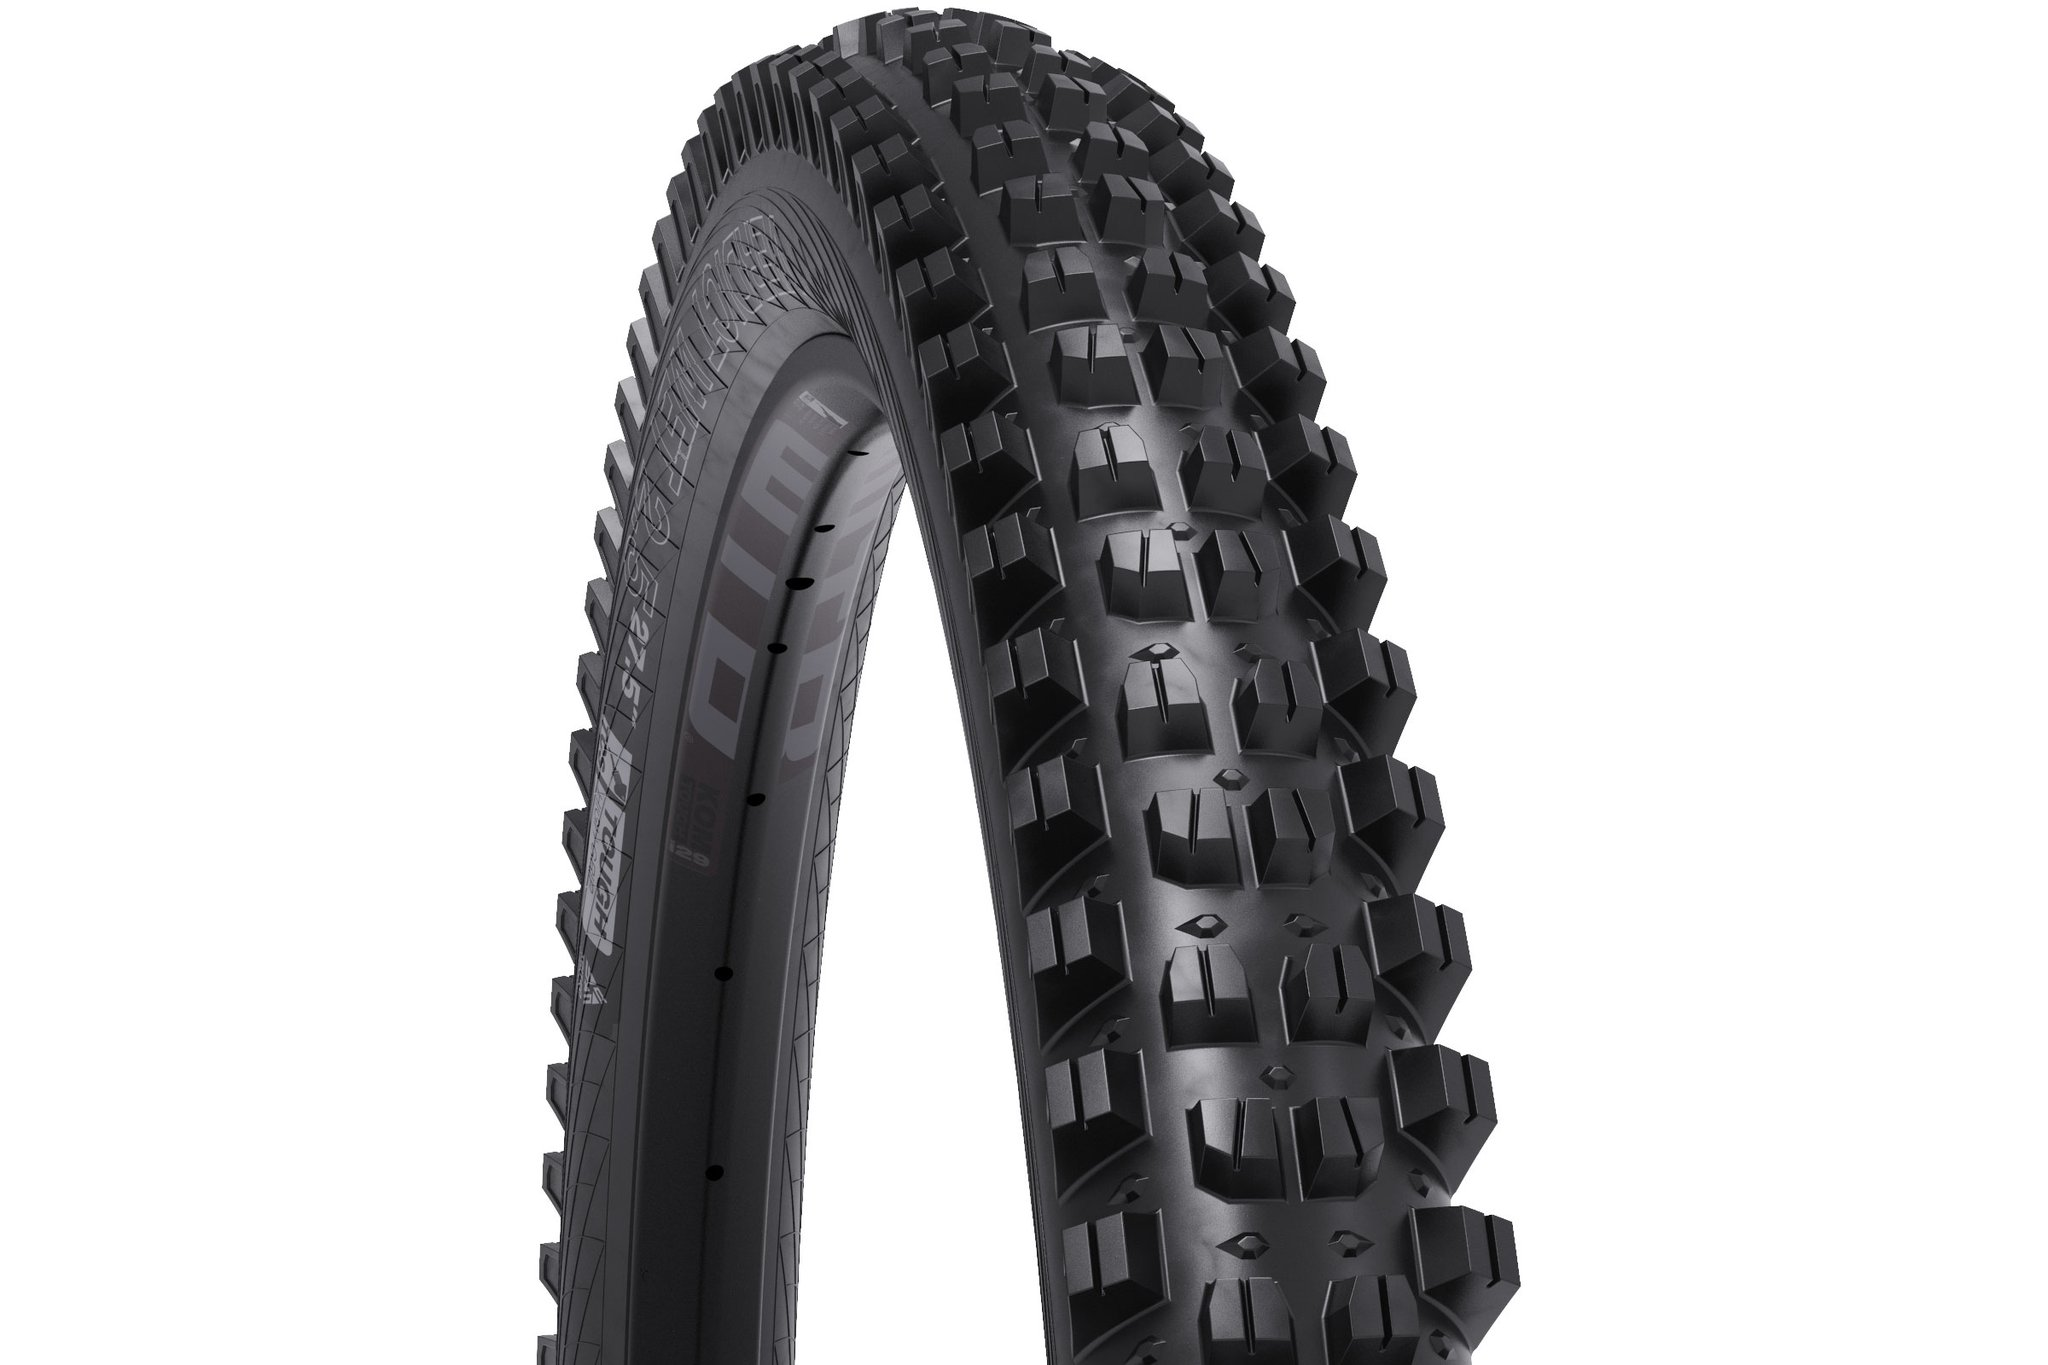 MTB wet tyres vs dry tyres: Get to know